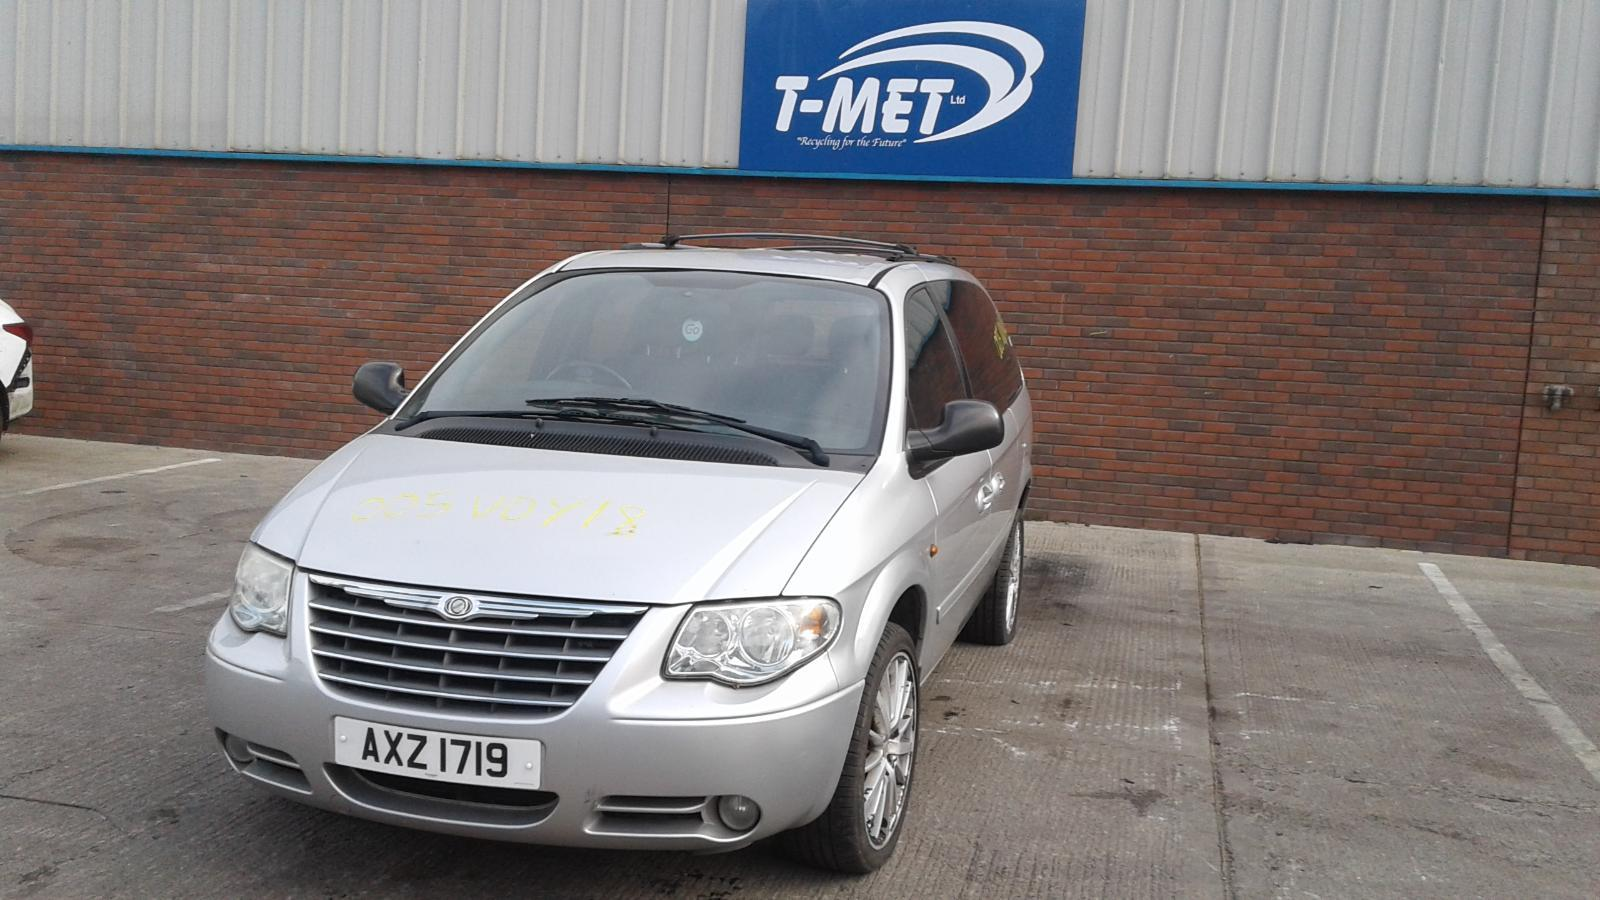 2007 Chrysler GRAND VOYAGER CRD EXECUTIVE Image